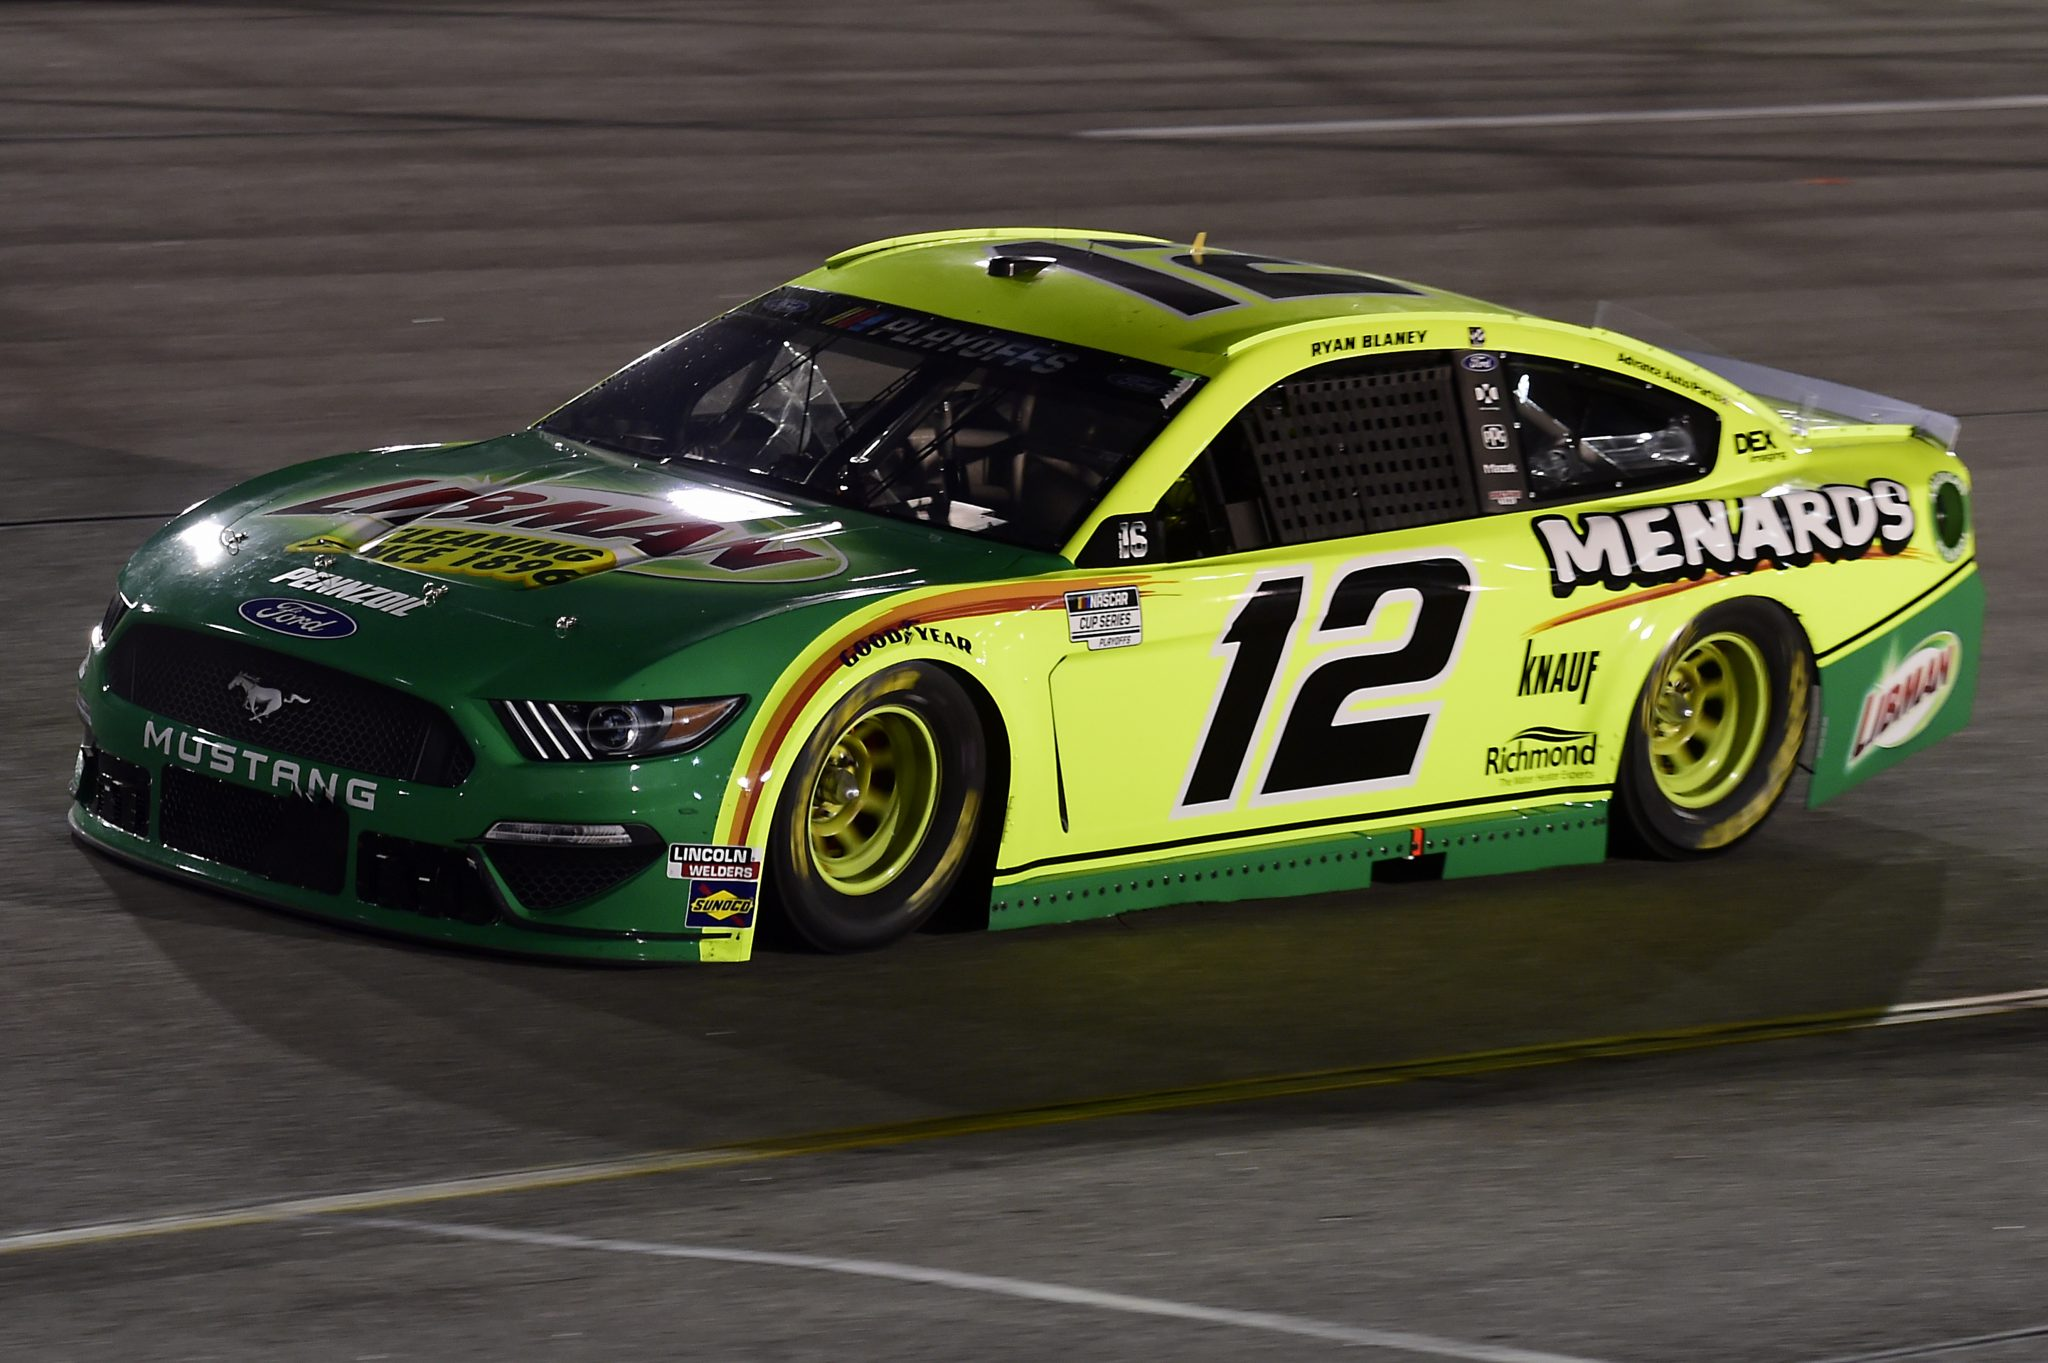 RICHMOND, VIRGINIA - SEPTEMBER 12: Ryan Blaney, driver of the #12 Menards/Libman Ford, drives during the NASCAR Cup Series Federated Auto Parts 400 at Richmond Raceway on September 12, 2020 in Richmond, Virginia. (Photo by Jared C. Tilton/Getty Images) | Getty Images